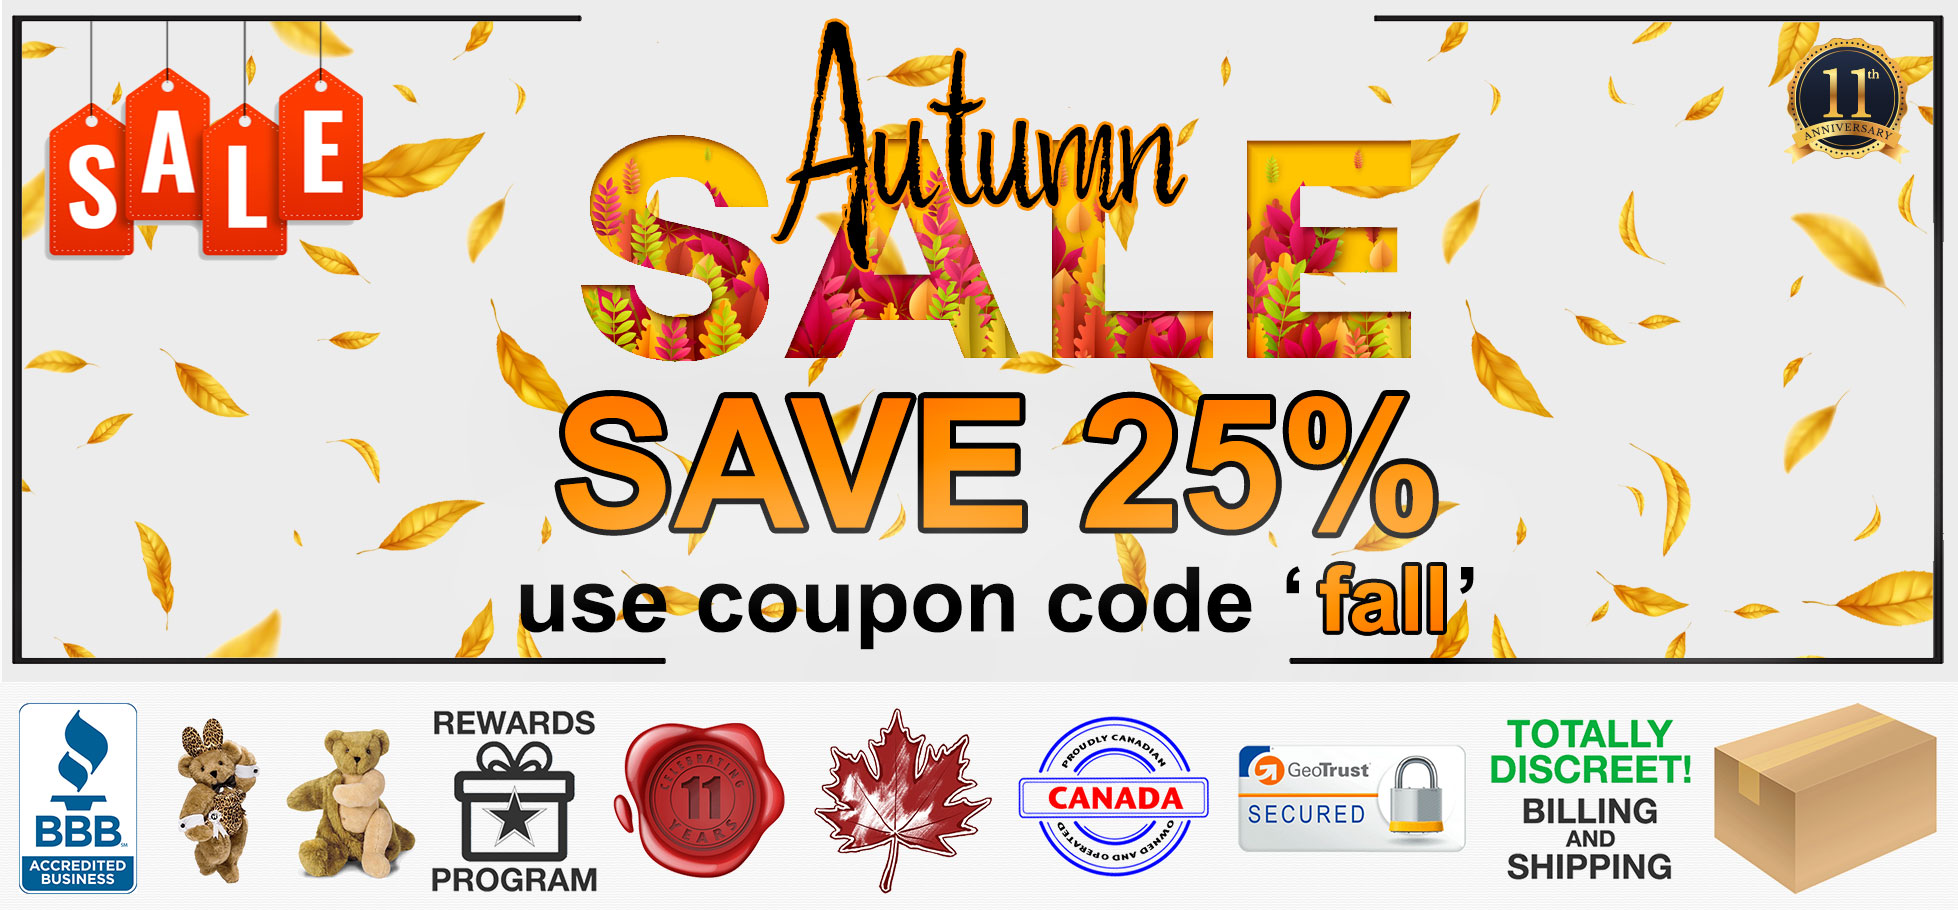 Bed Time Toys, Autumn Sex Toy Sale, Sex Toys Canada